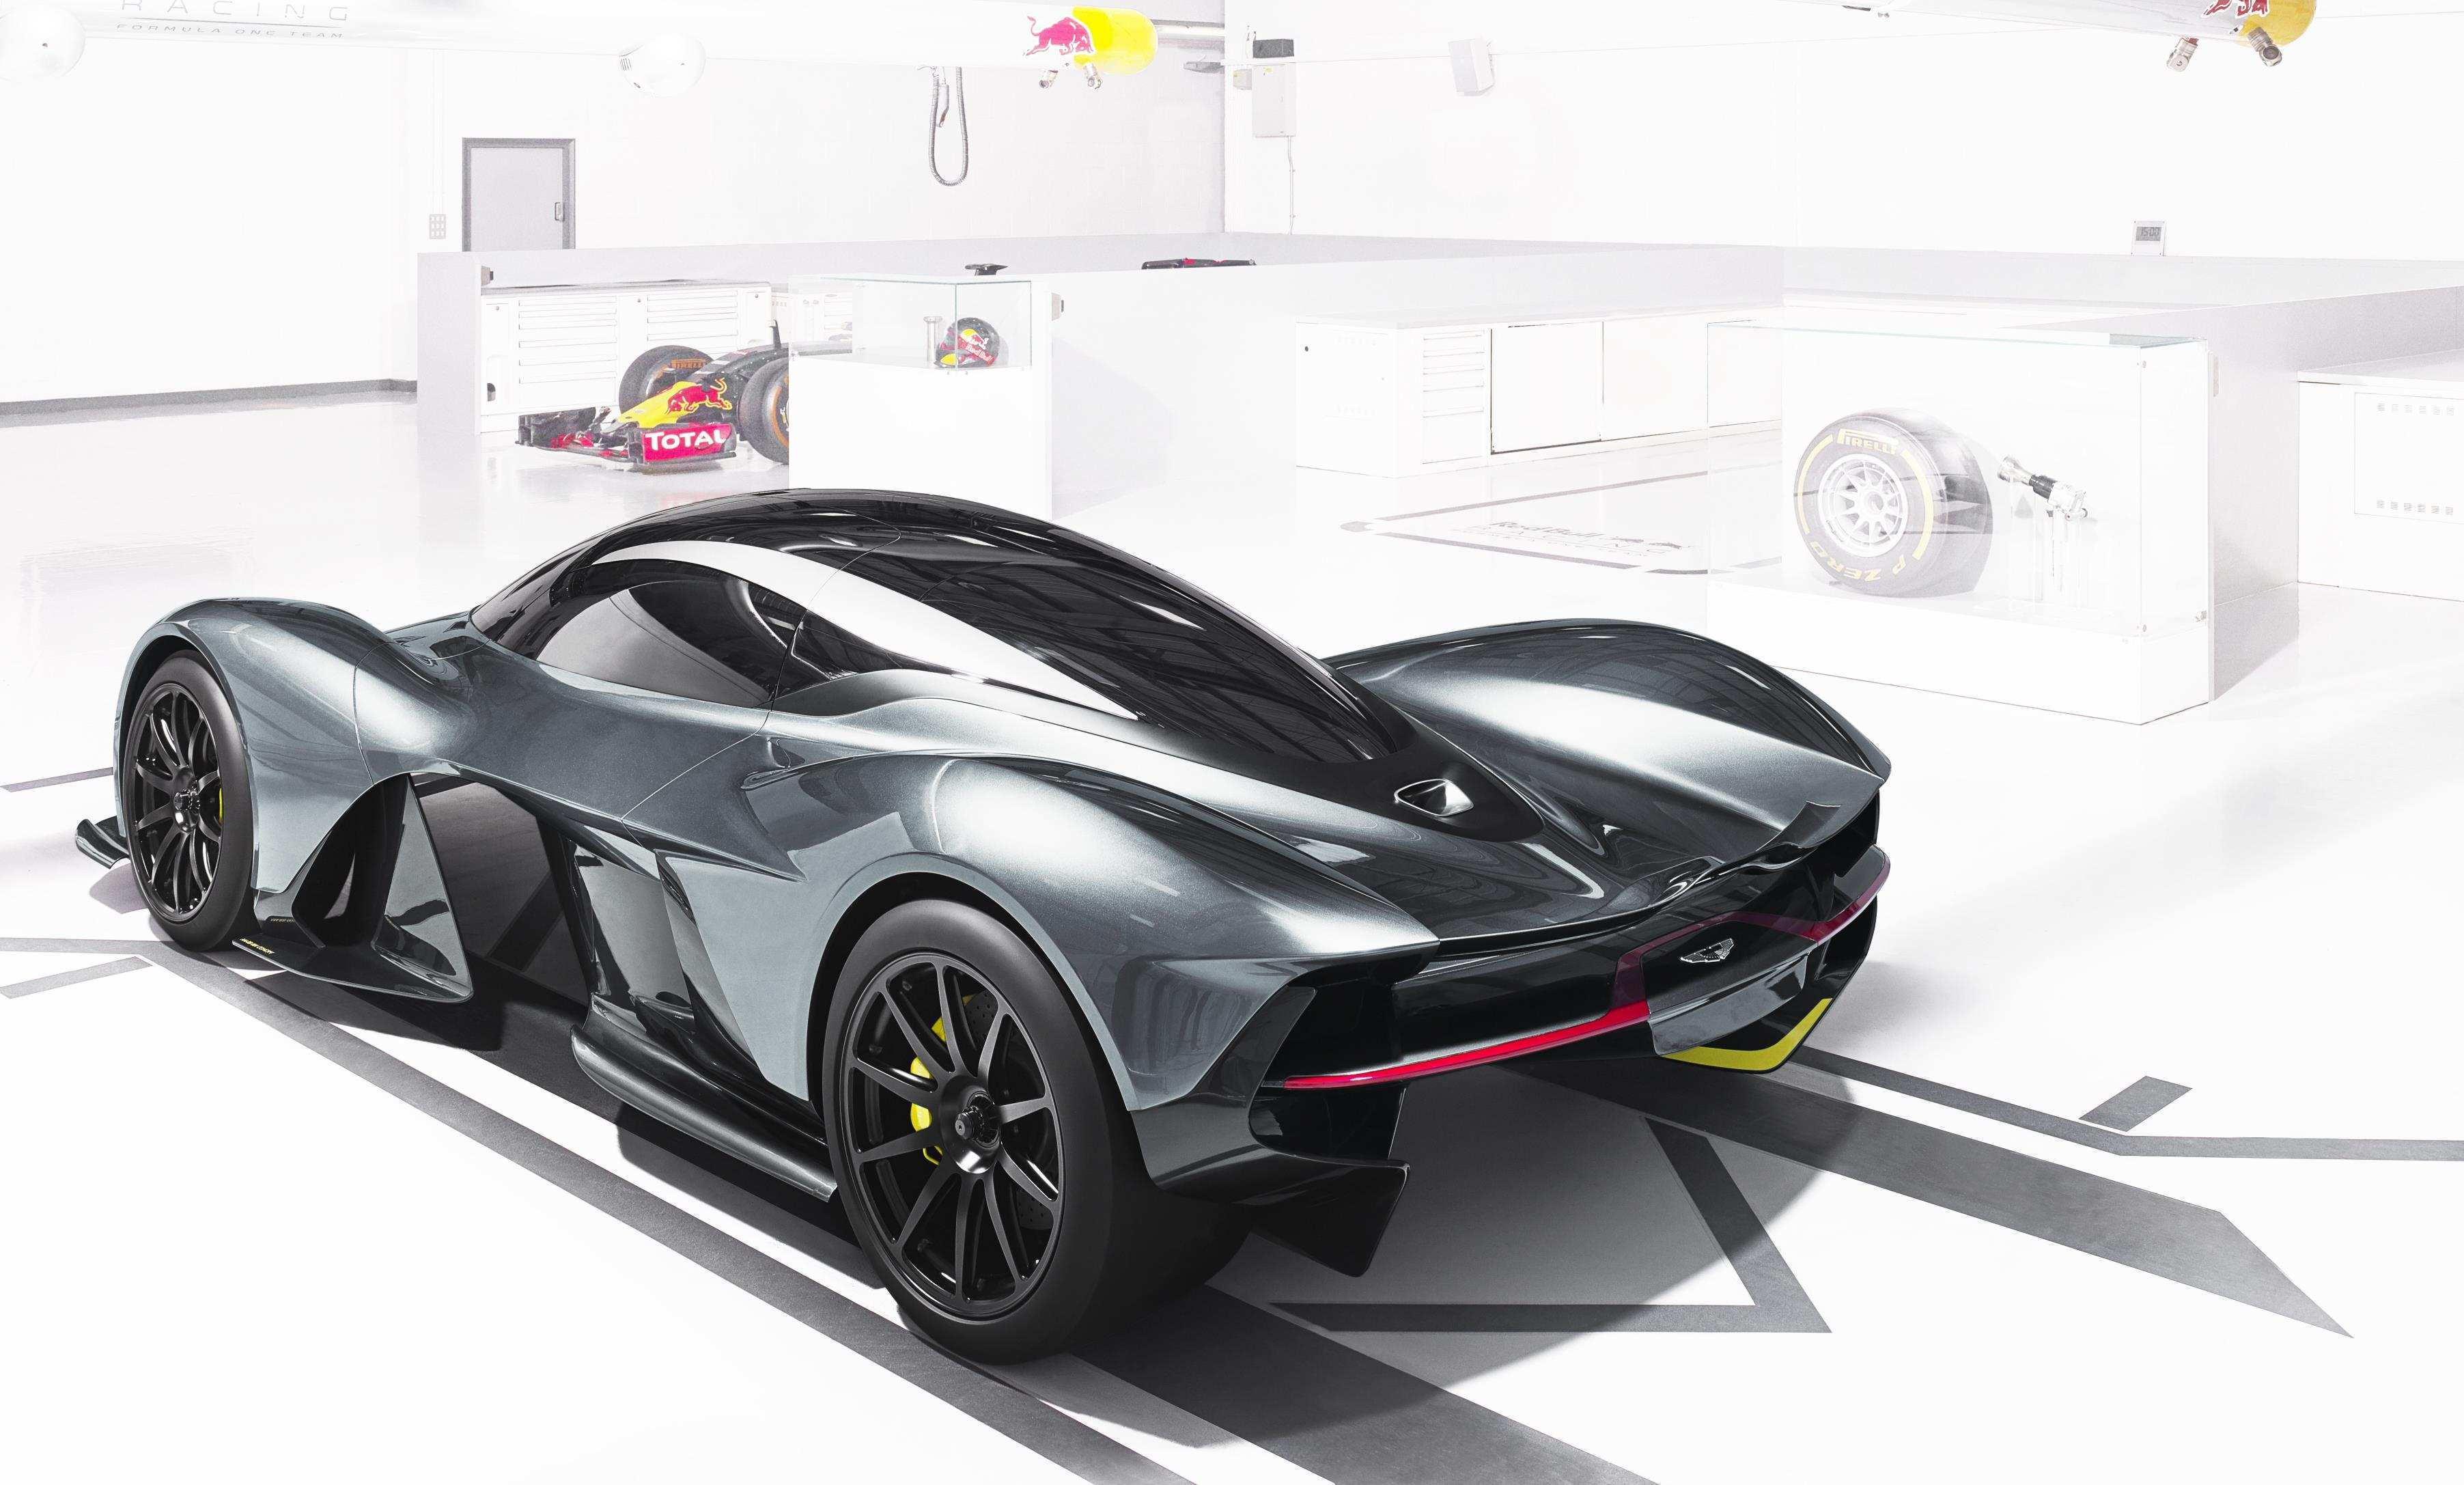 60 Gallery of 2020 Aston Martin Valkyrie Exterior and Interior for 2020 Aston Martin Valkyrie